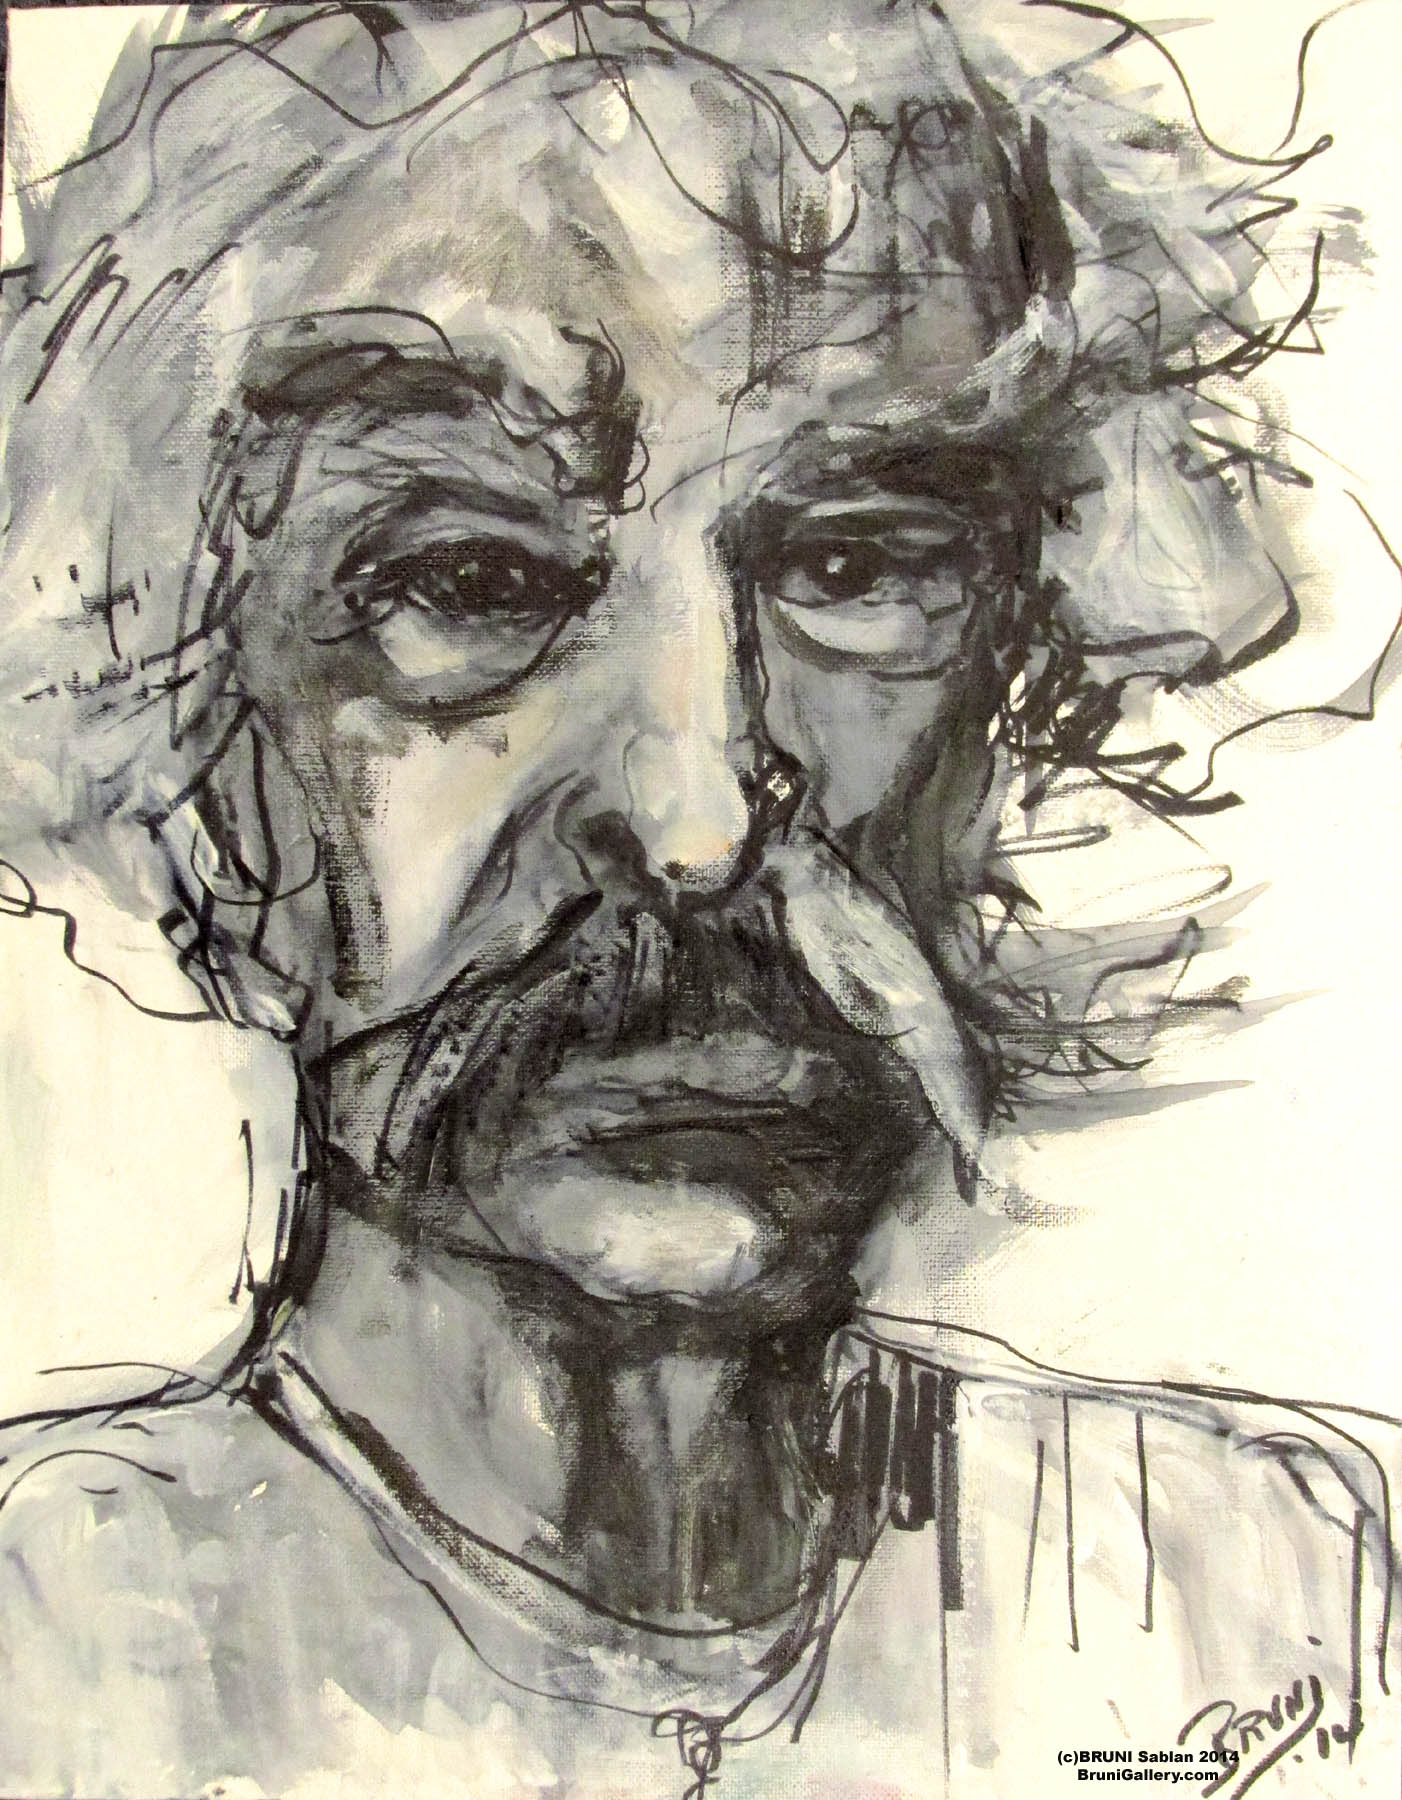 Mark Twain by BRUNI